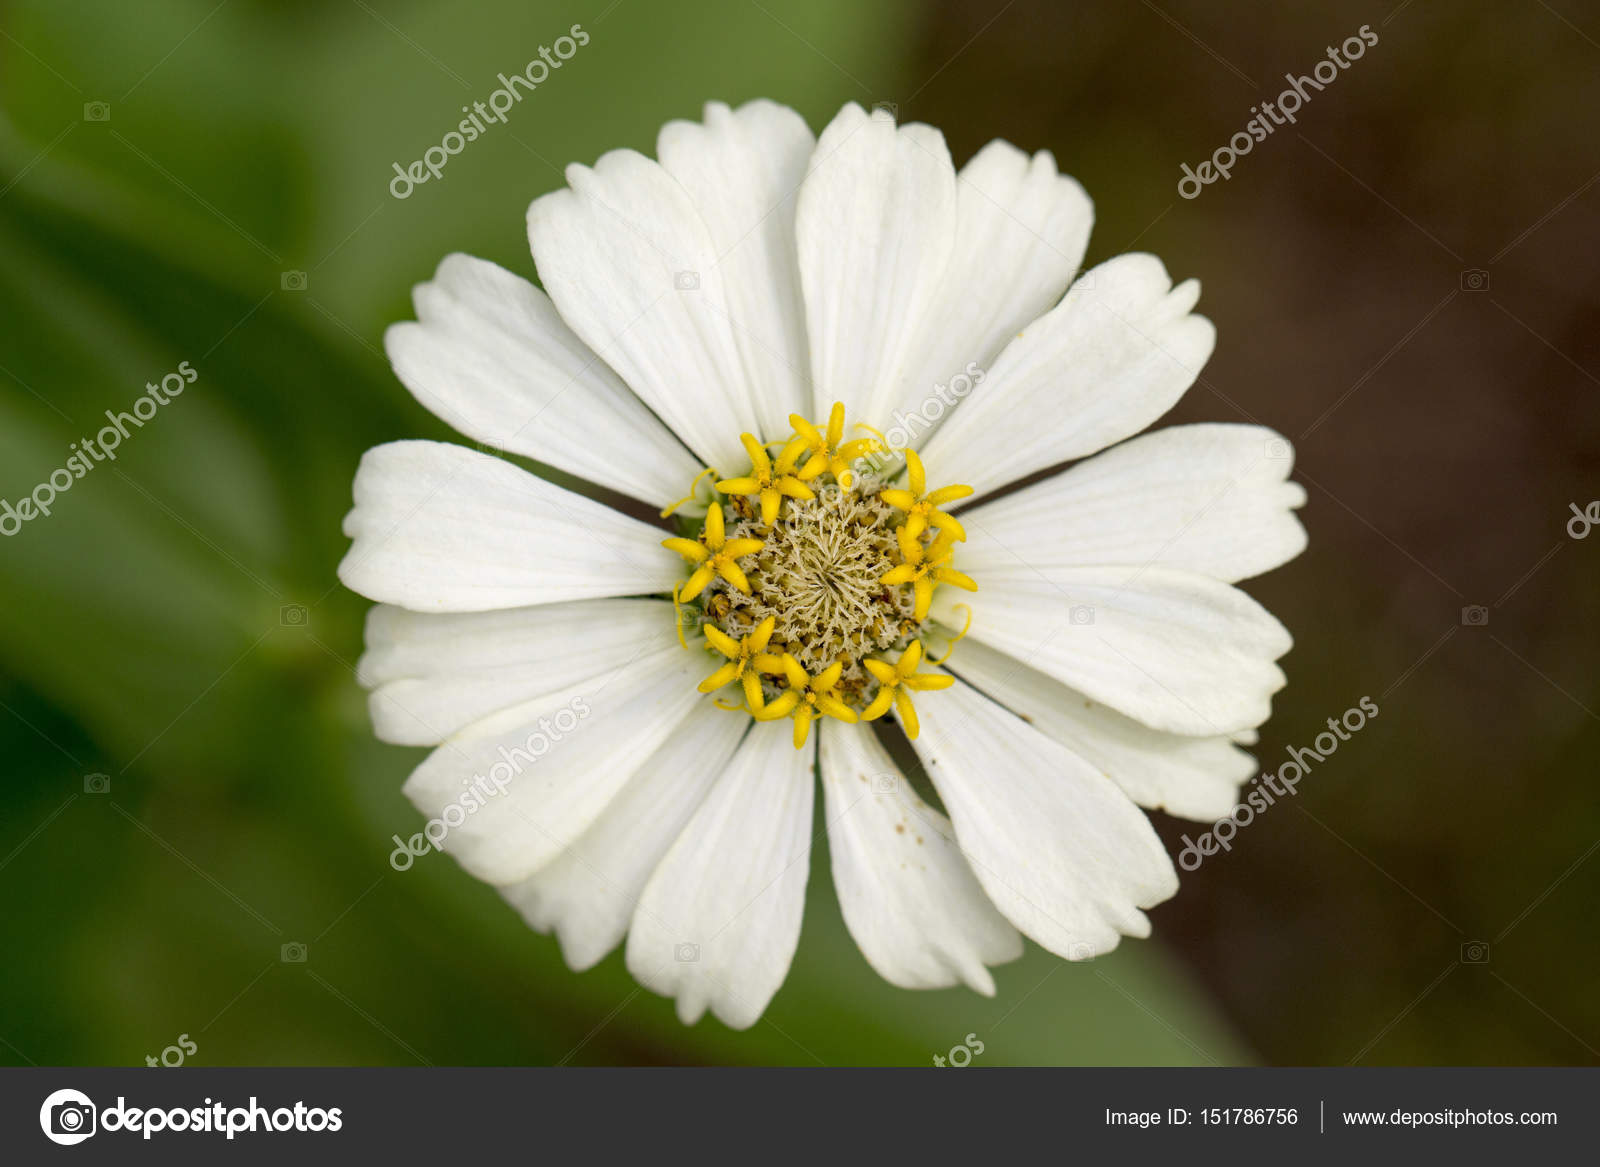 Summer Meadow Tropical Flower With Yellow Stamen And White Petals